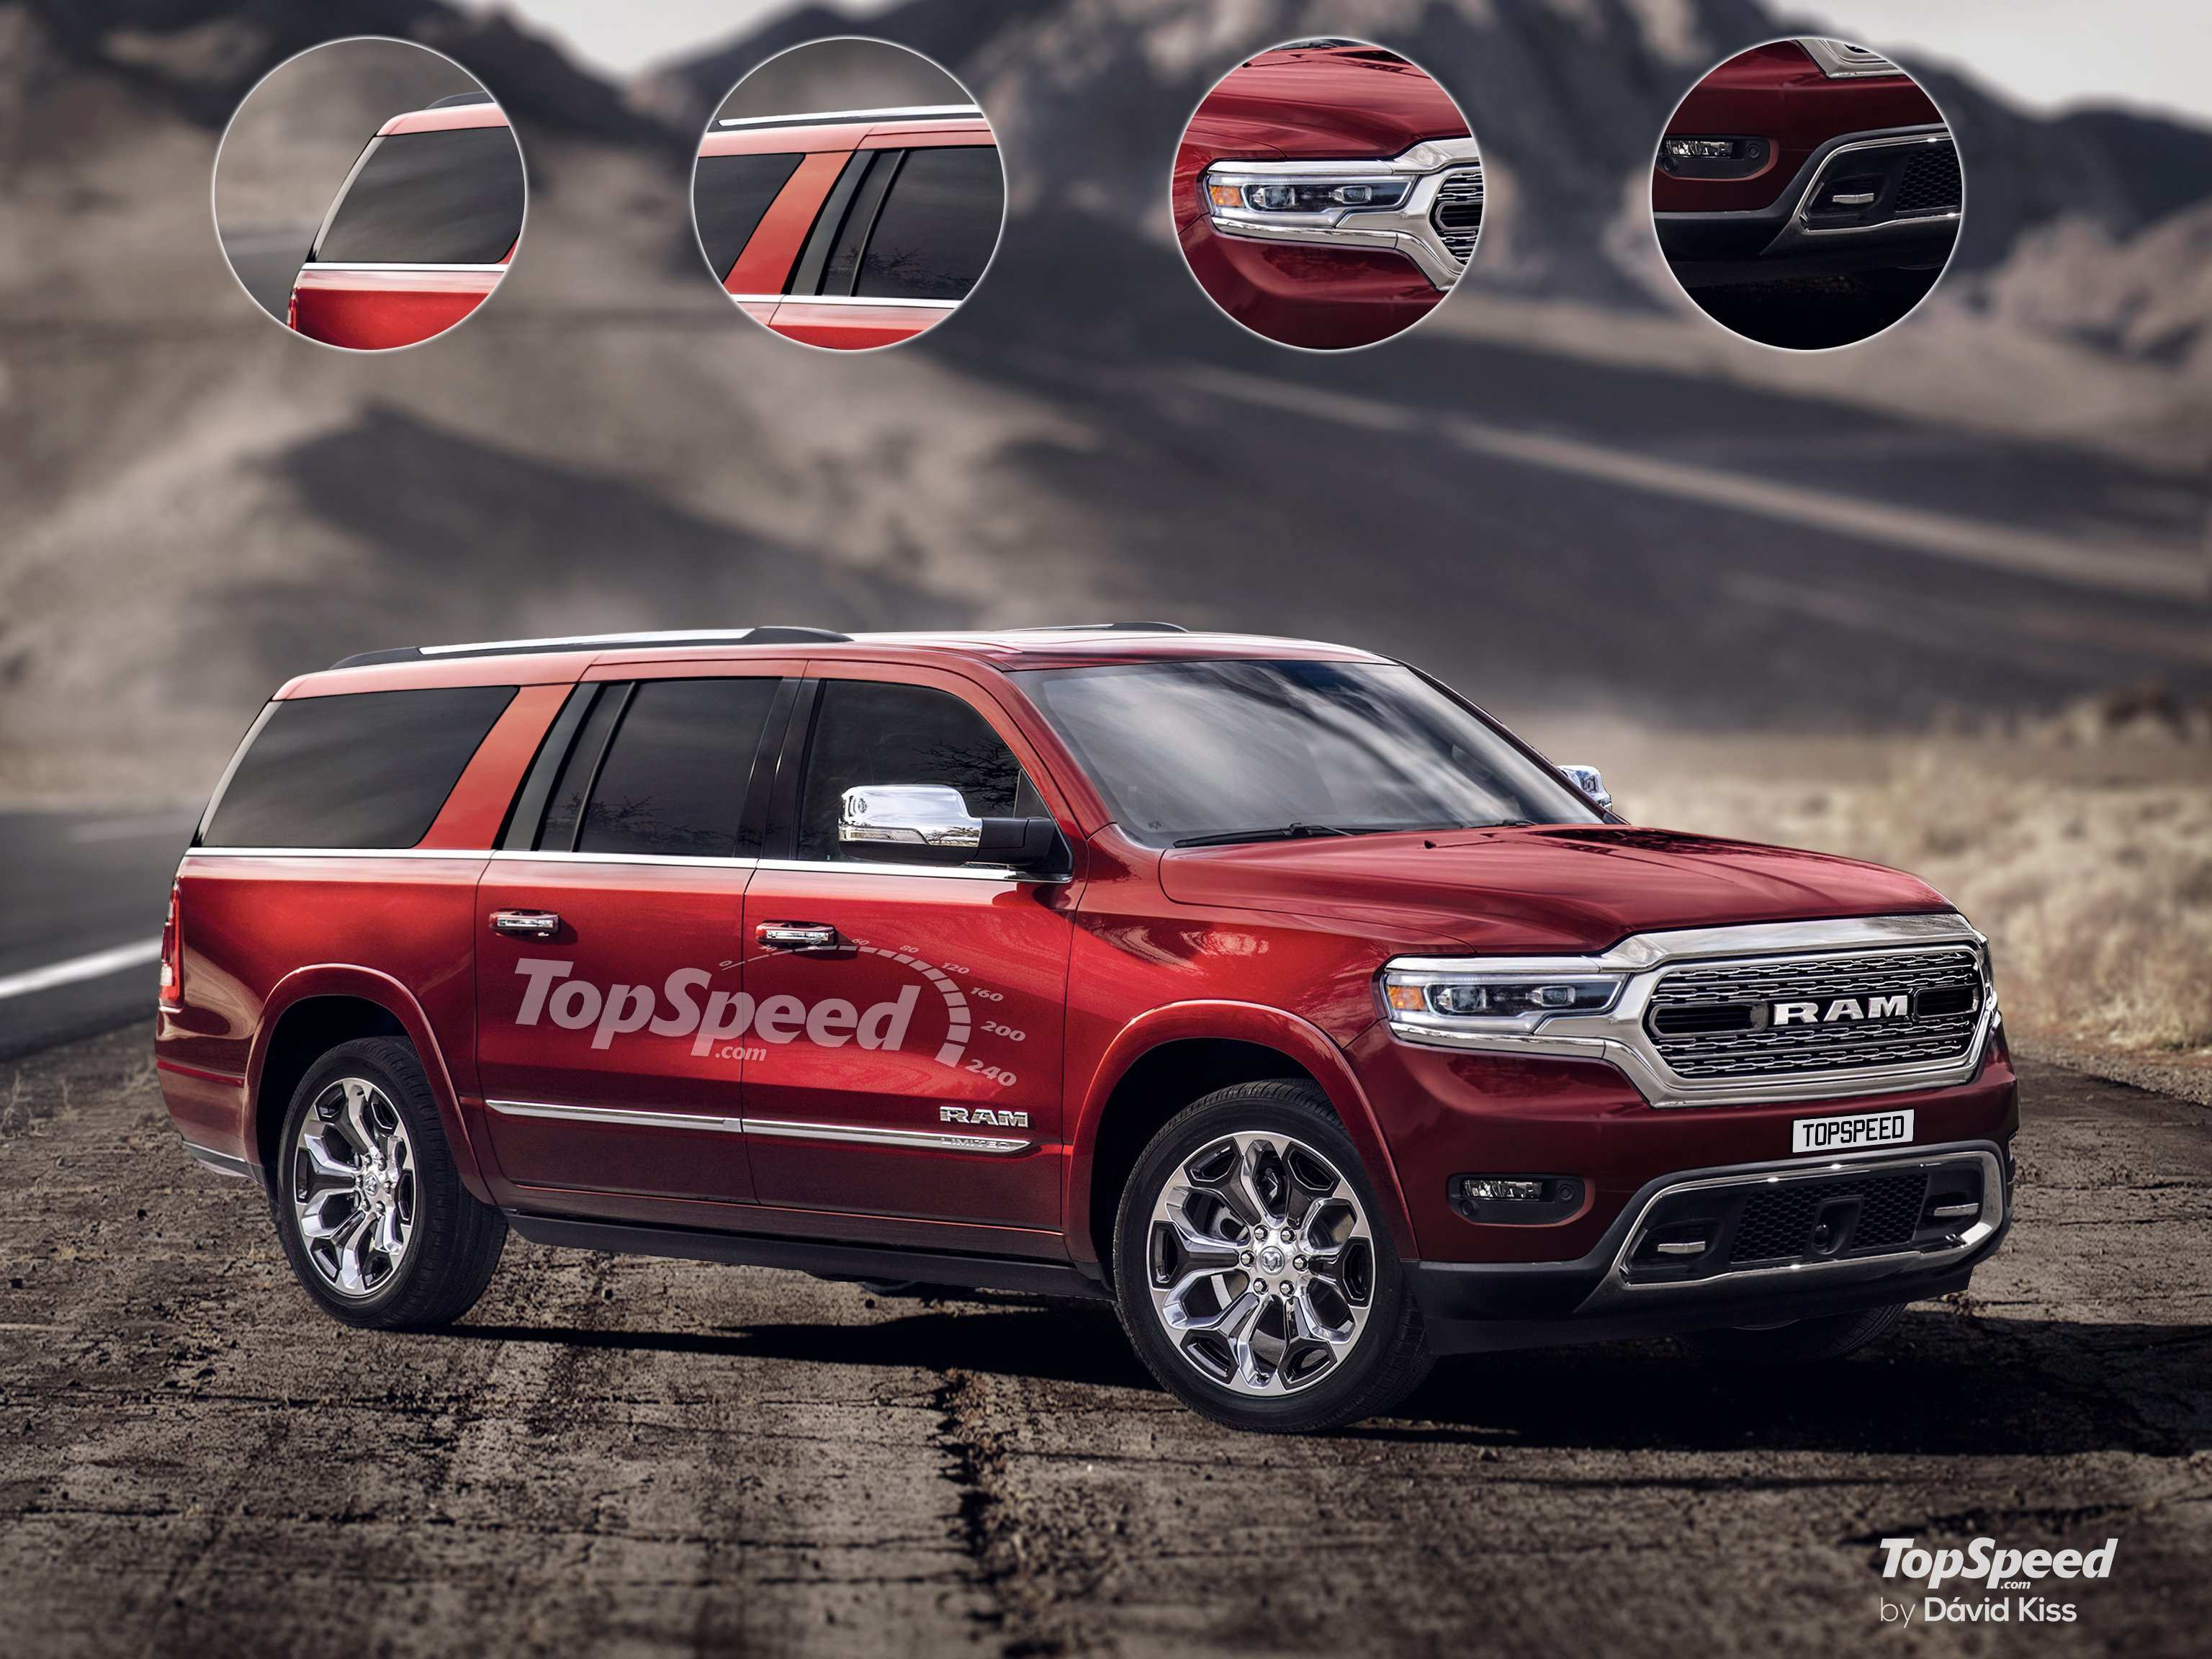 33 All New Dodge Full Size Suv 2020 New Review for Dodge Full Size Suv 2020